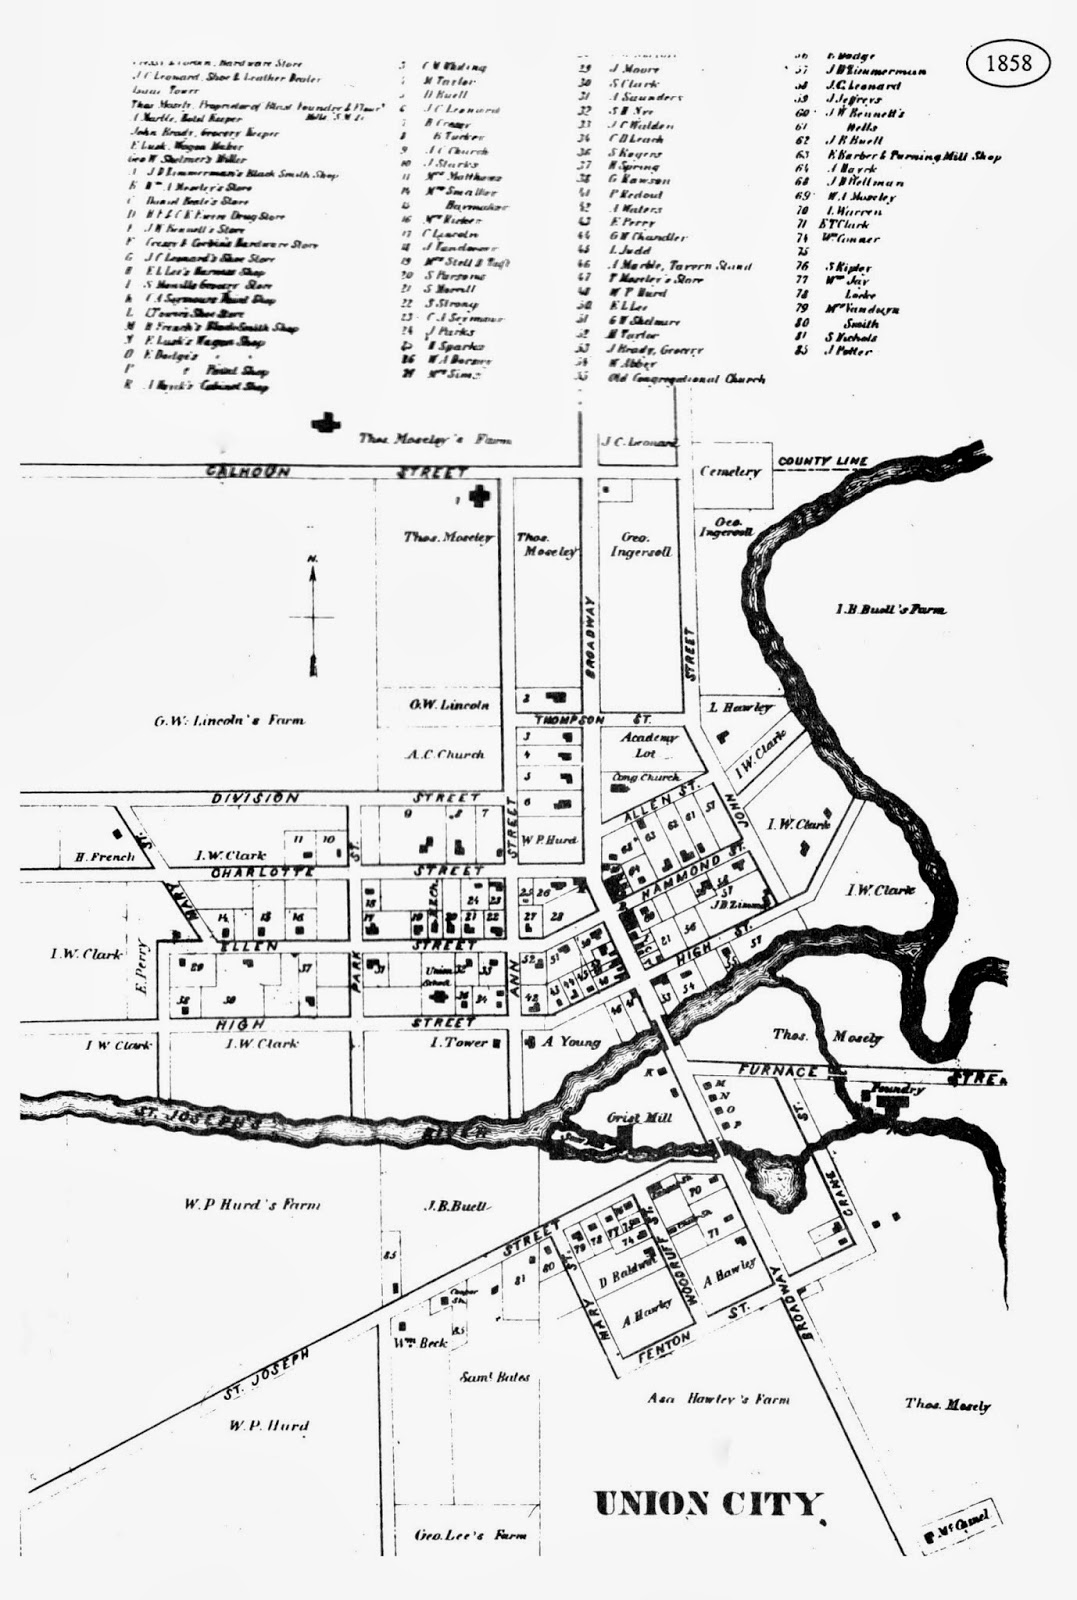 Old Union City Postcards and Pictures...: Map of Union